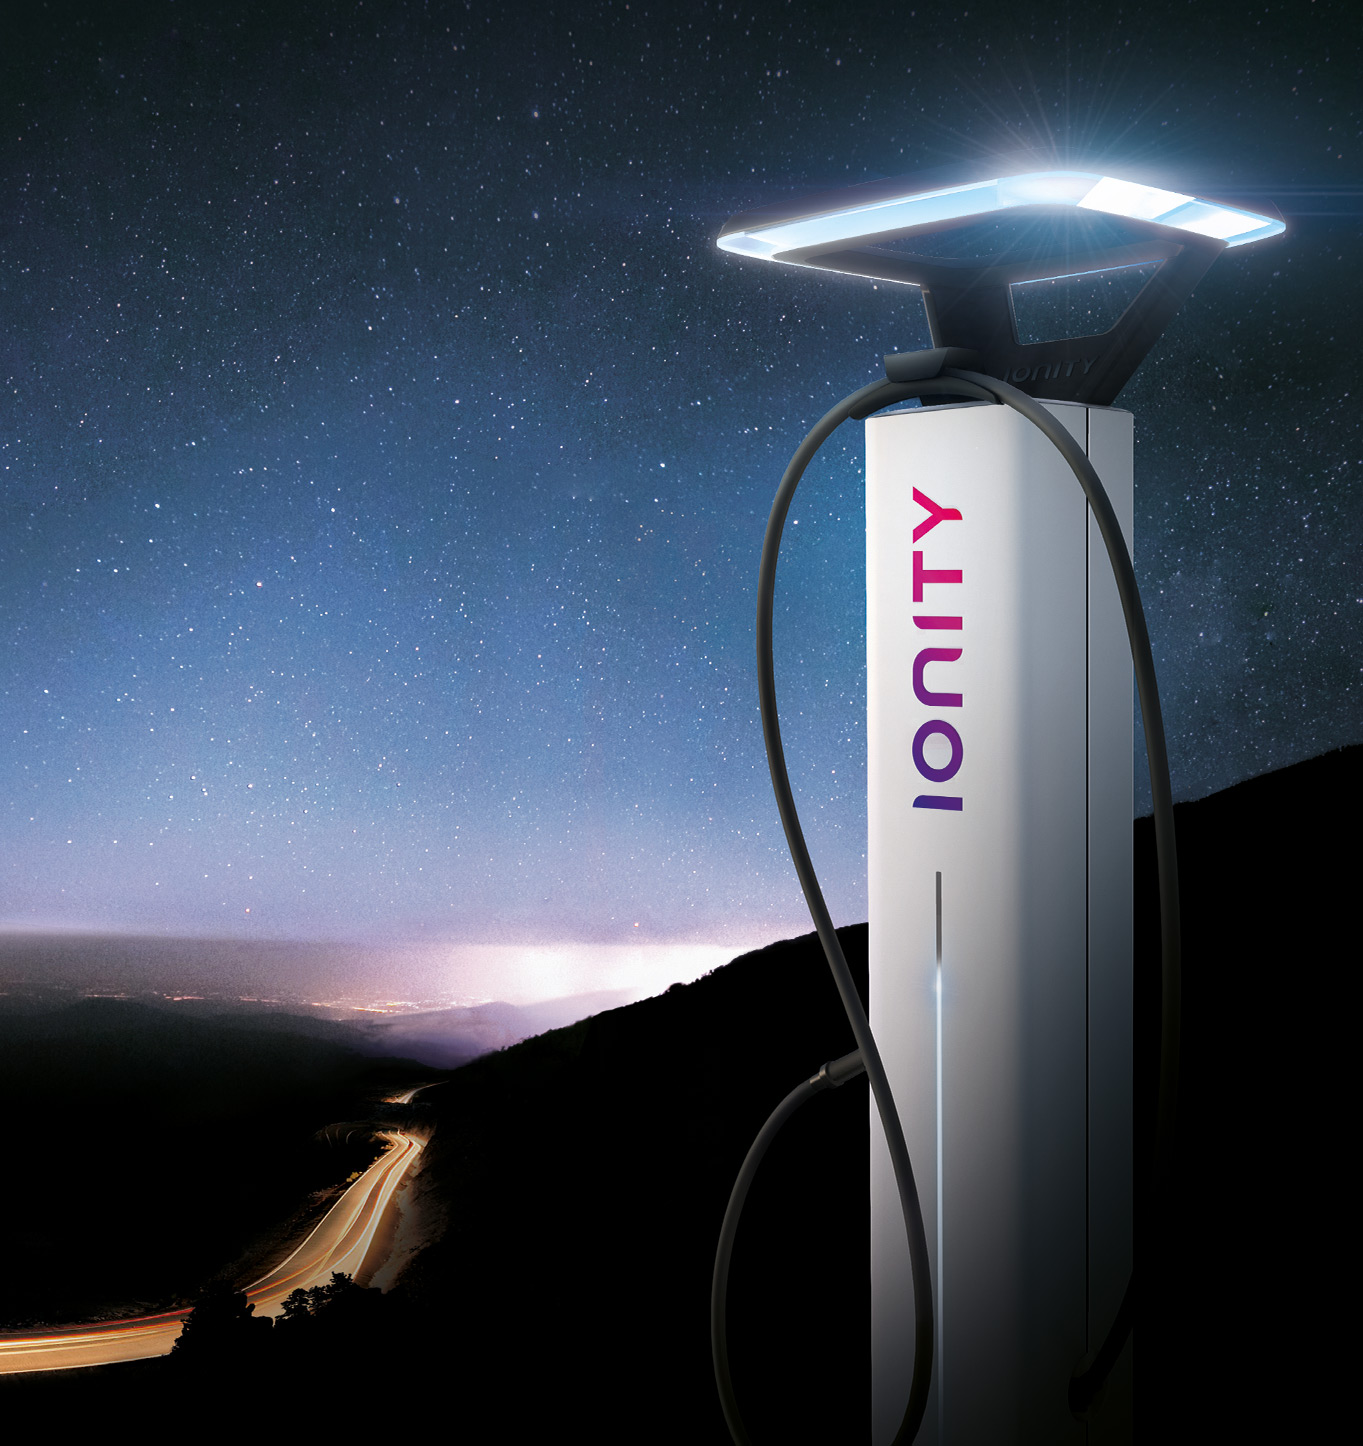 ionity electric vehicle charger by night